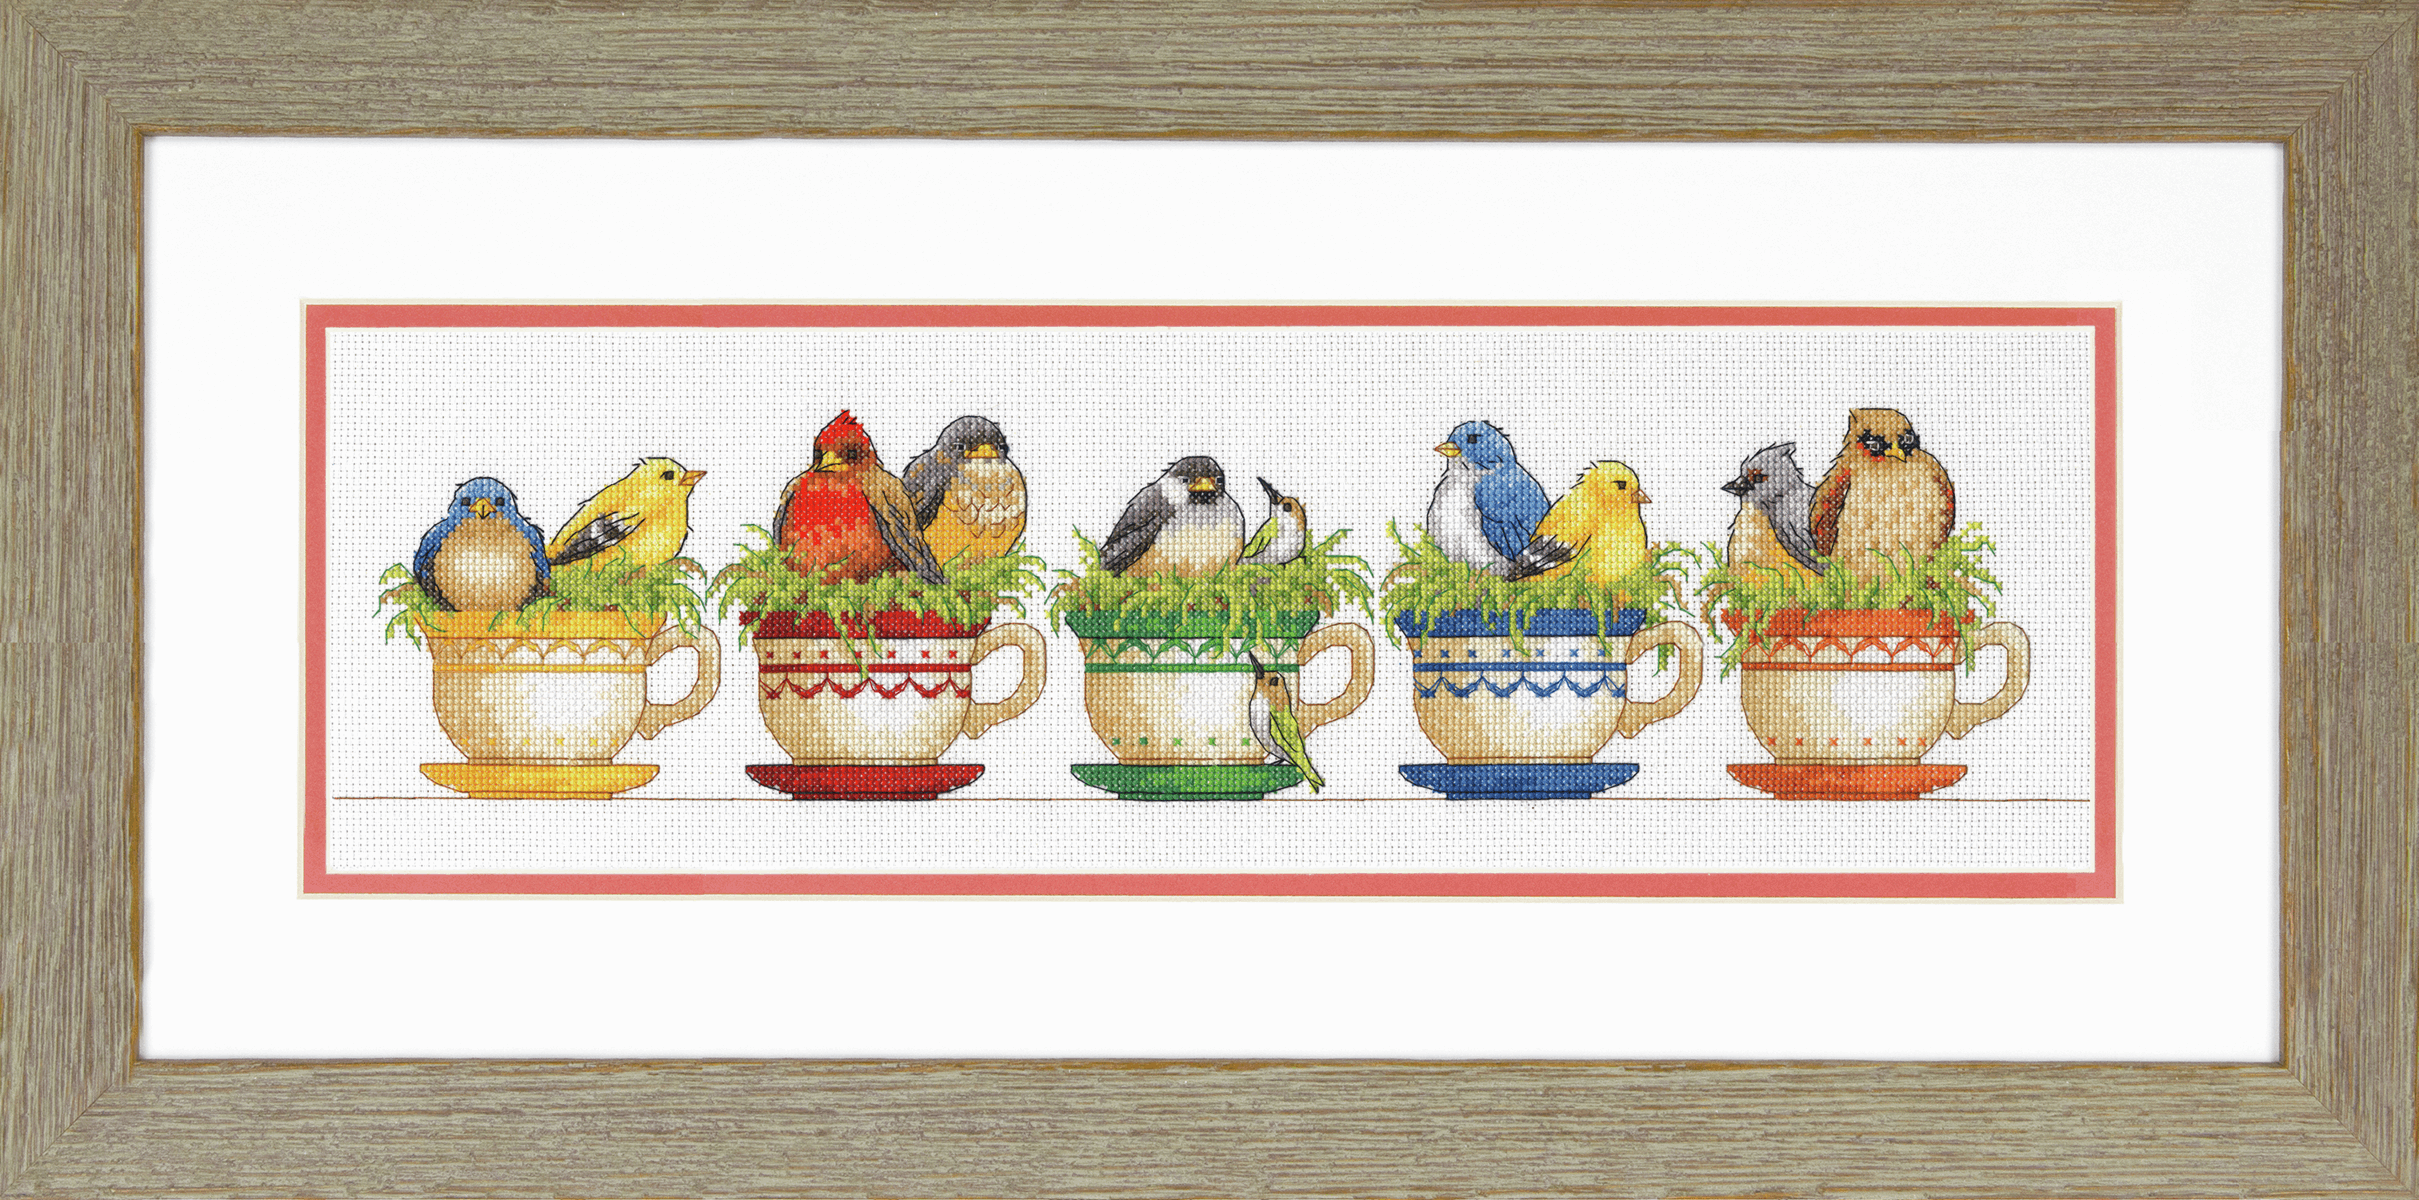 Picture of Counted Cross Stitch Kit: Teacup Birds